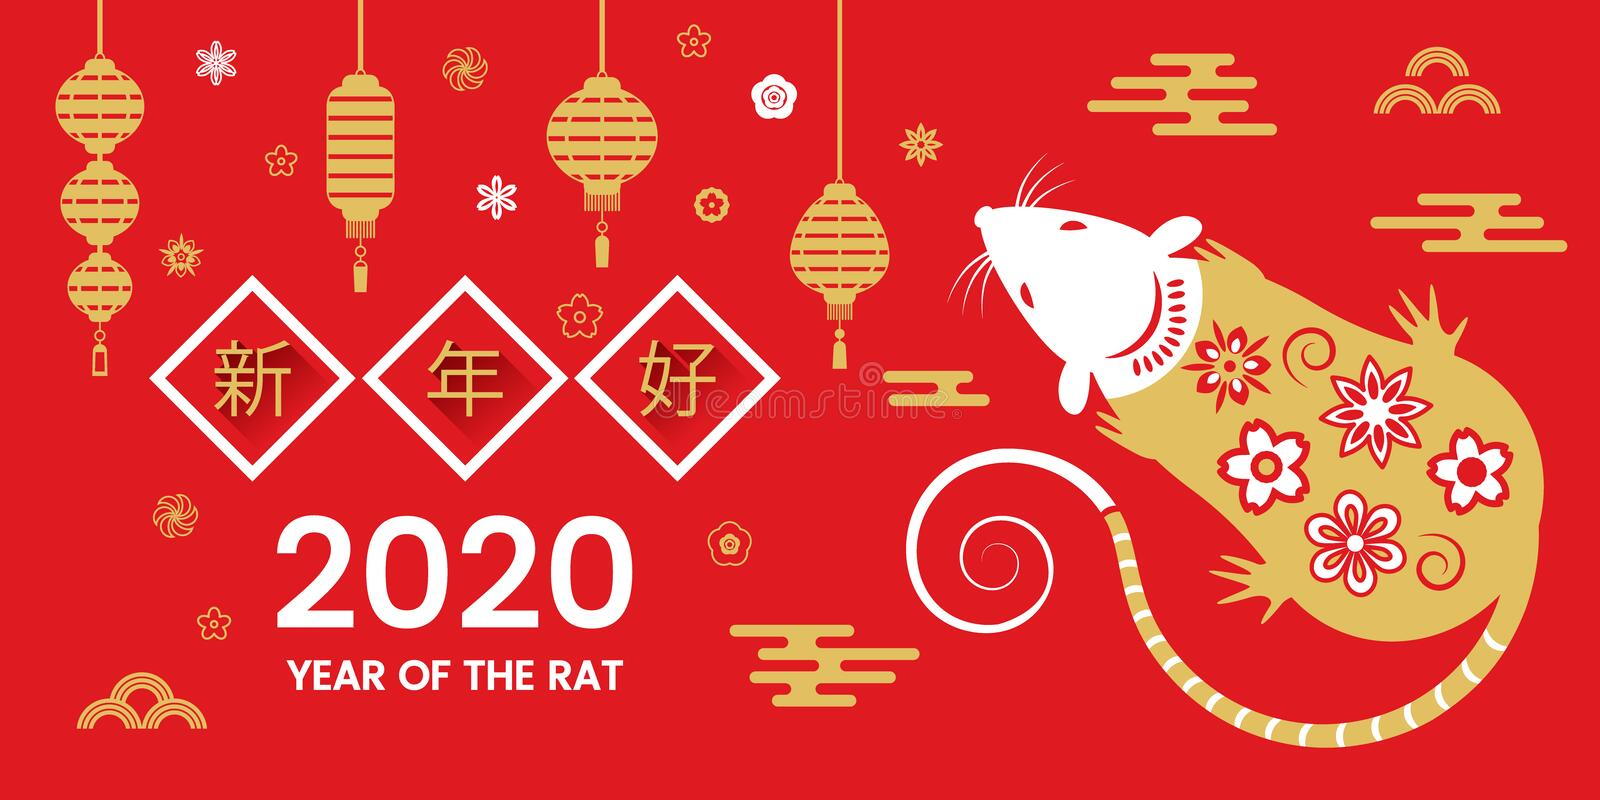 The white rat is a symbol of 2020, the Chinese New Year. Wish in Chinese - Happy New Year. stock illustration